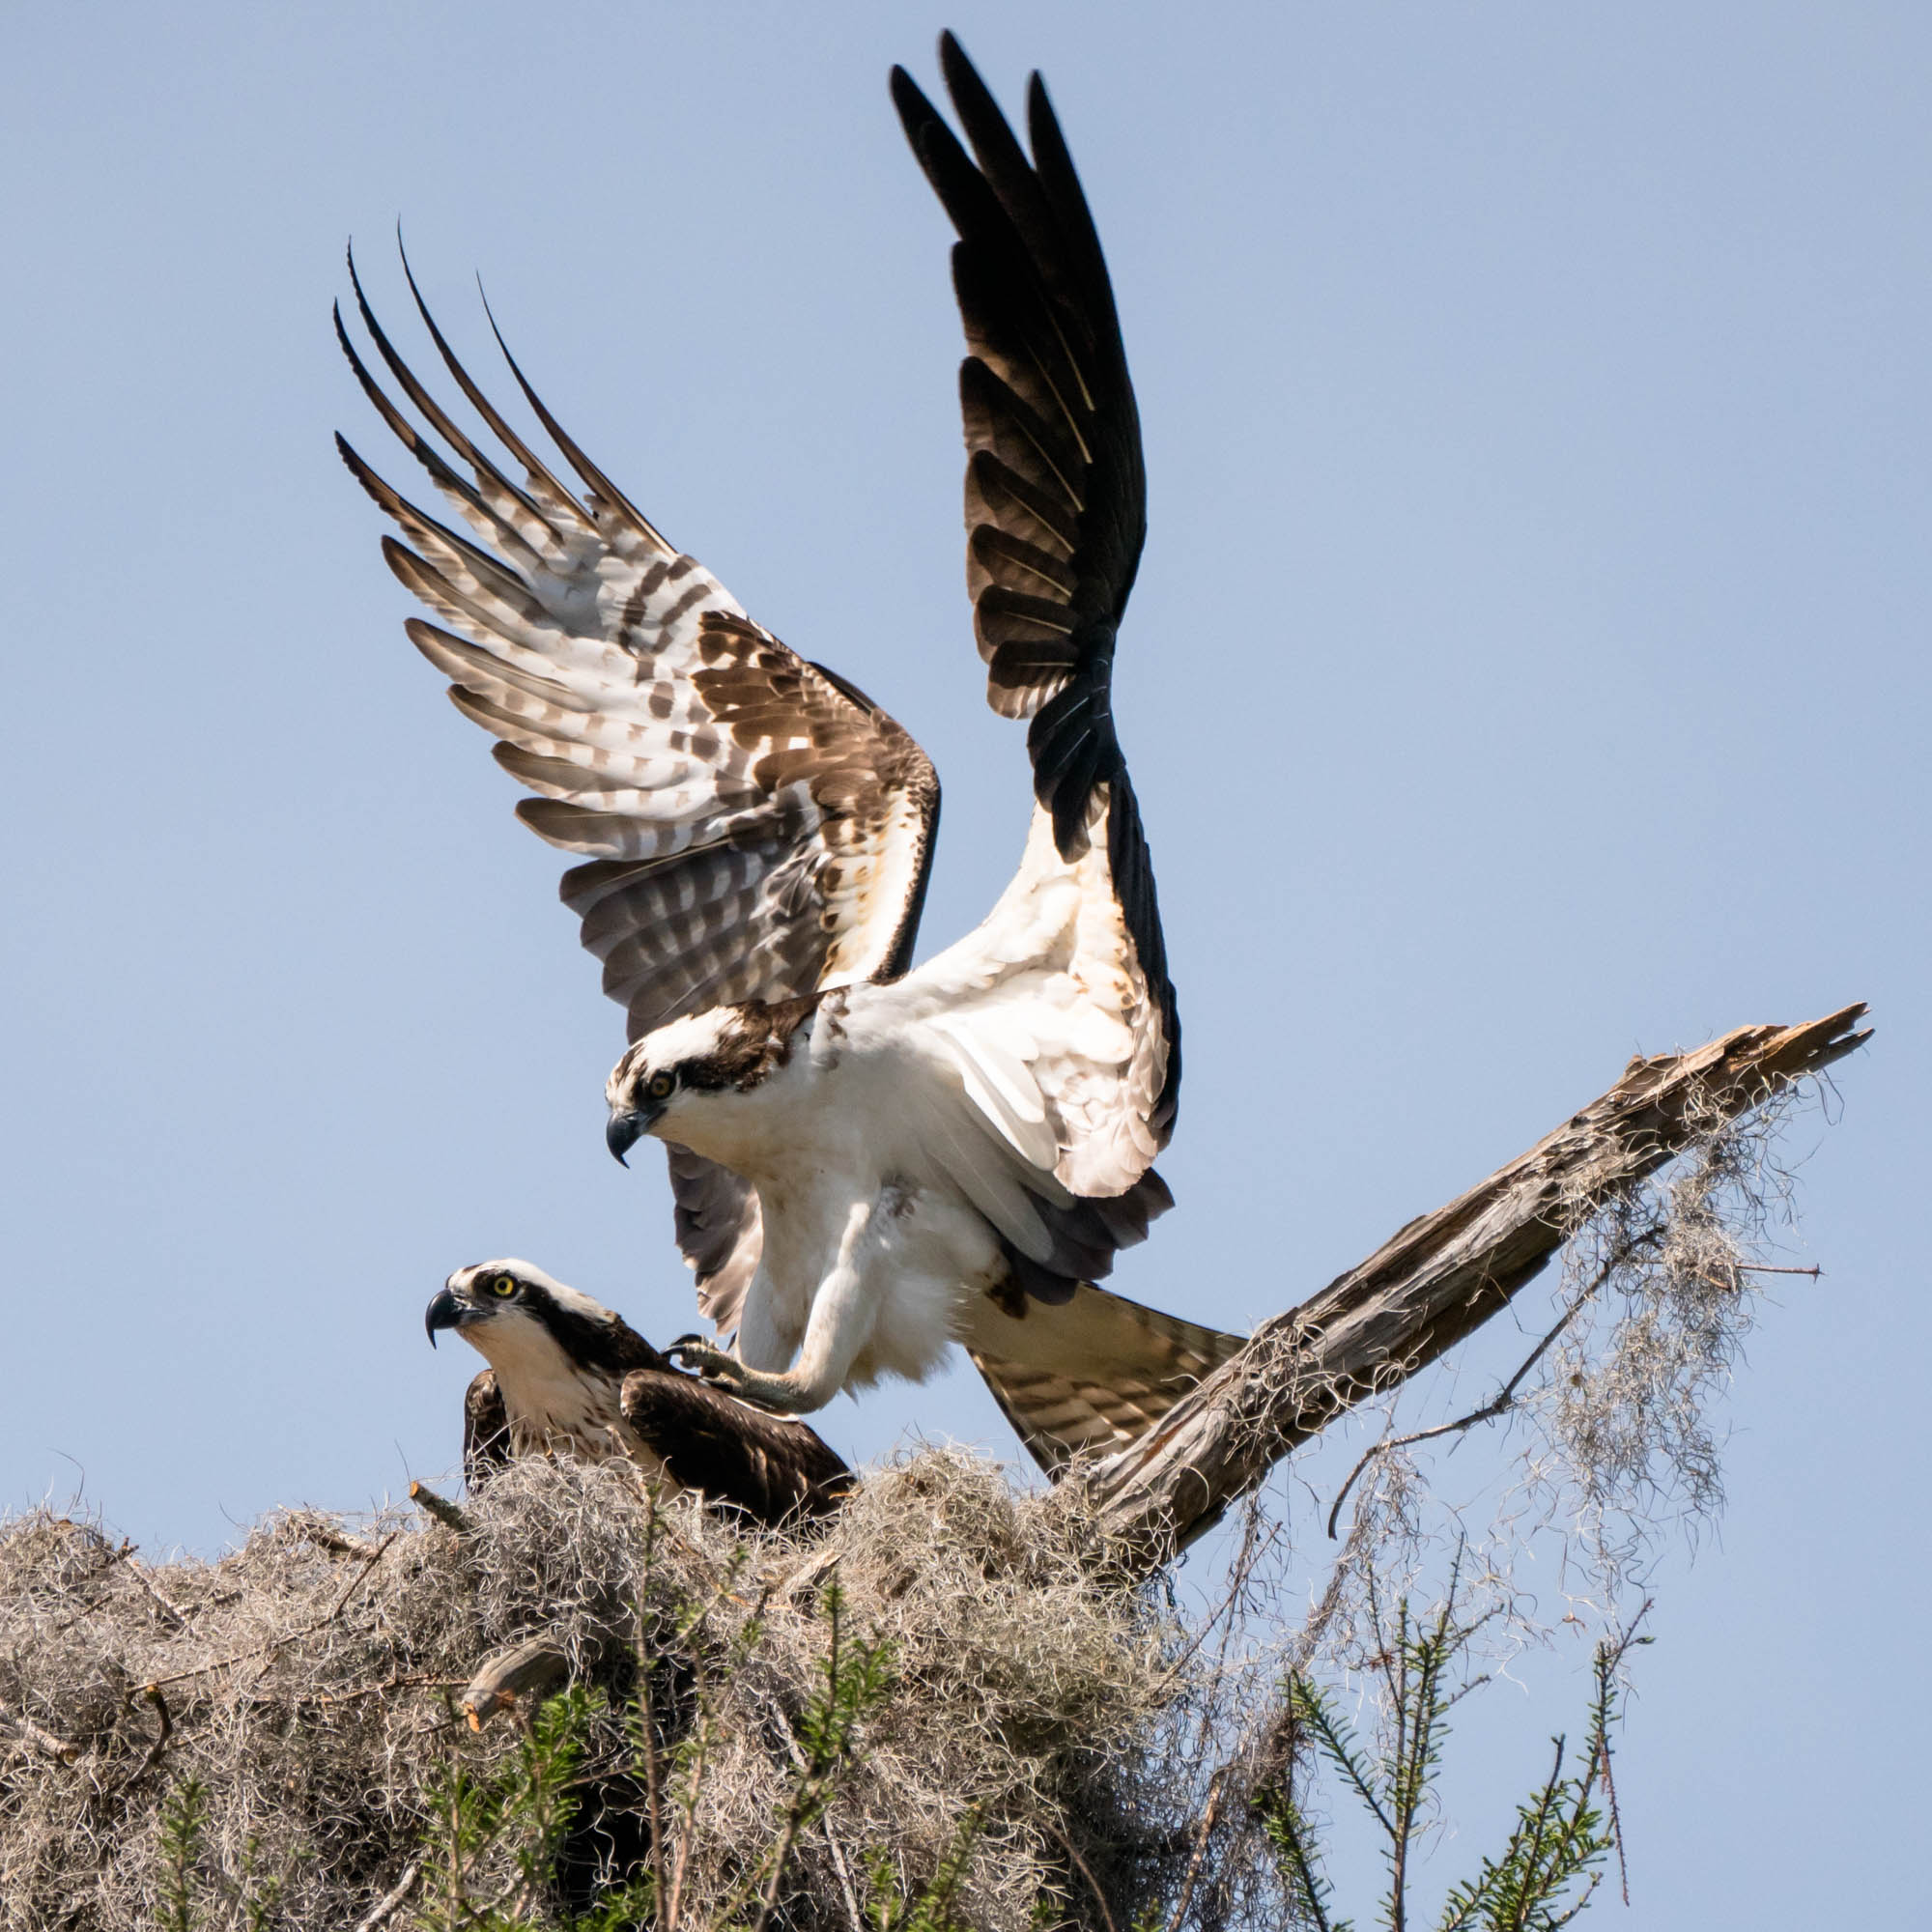 Pair of Osprey doing what they do in their nest